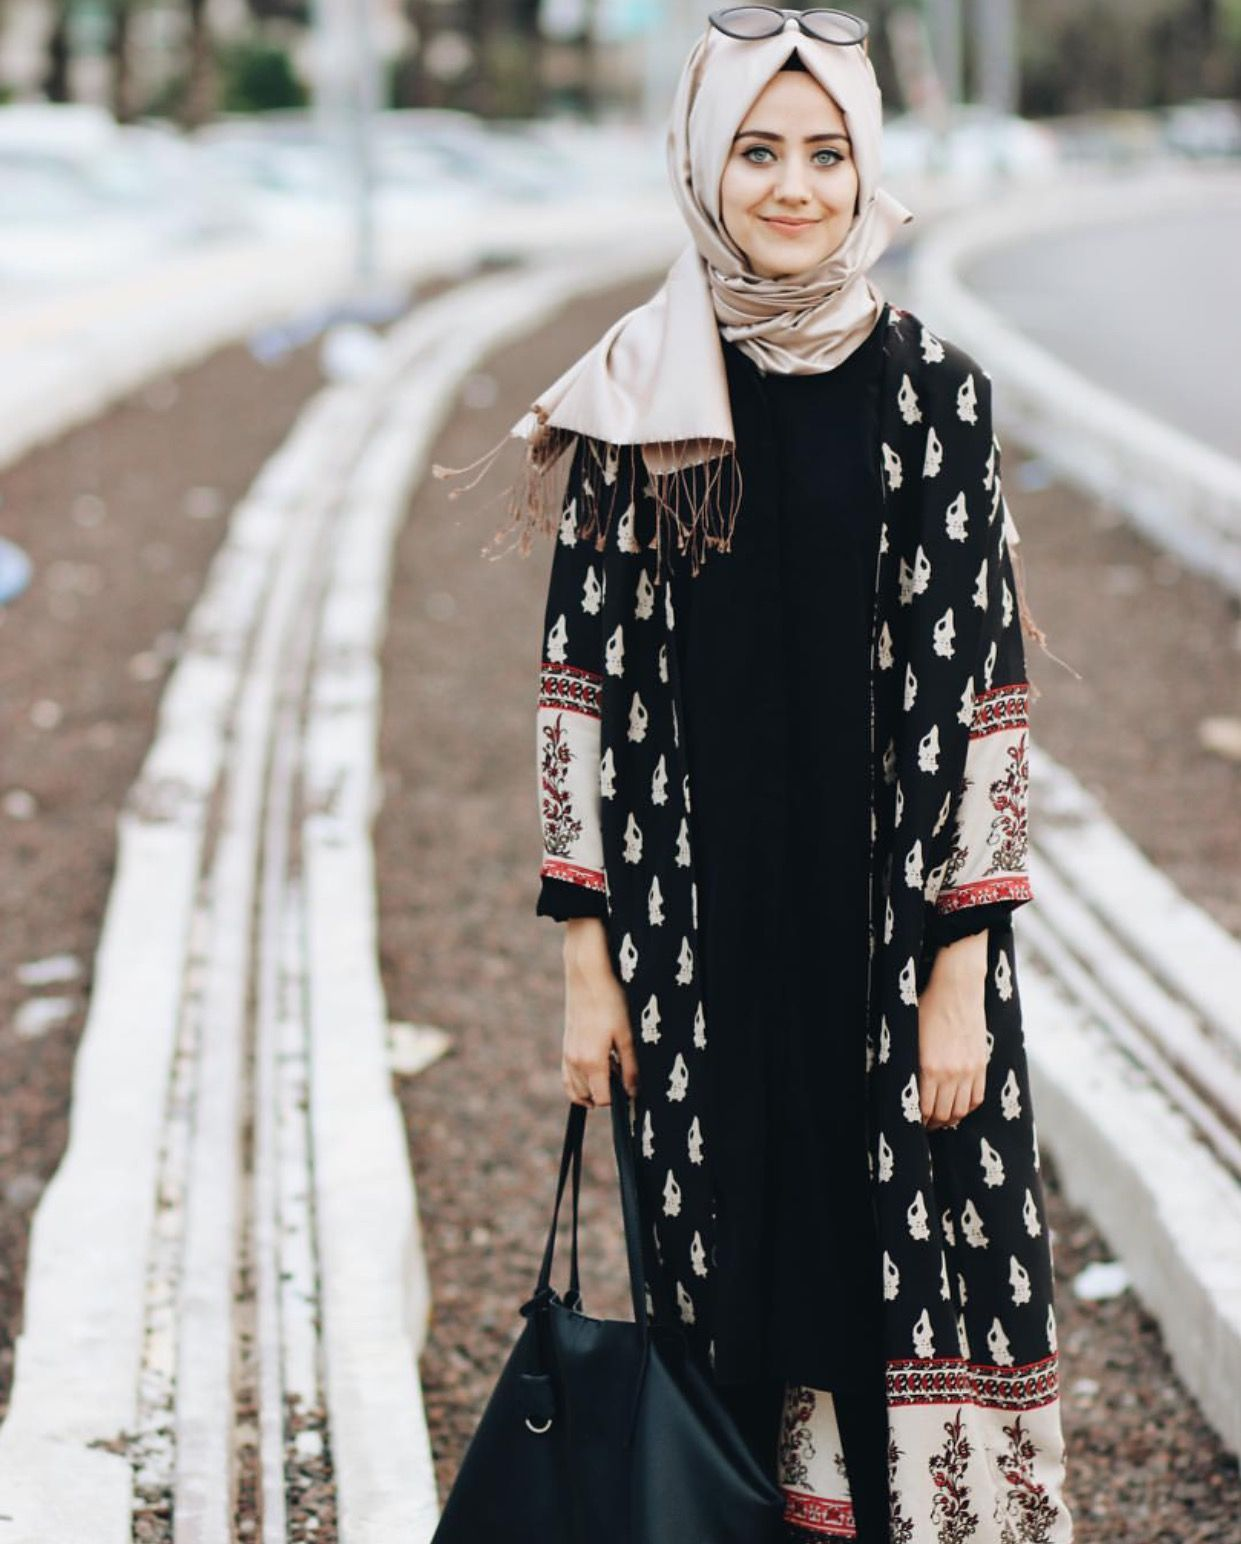 Pinterest Adarkurdish Hijab Style Hijab Style Pinterest Hijab Fashion Hijabs And Hijab